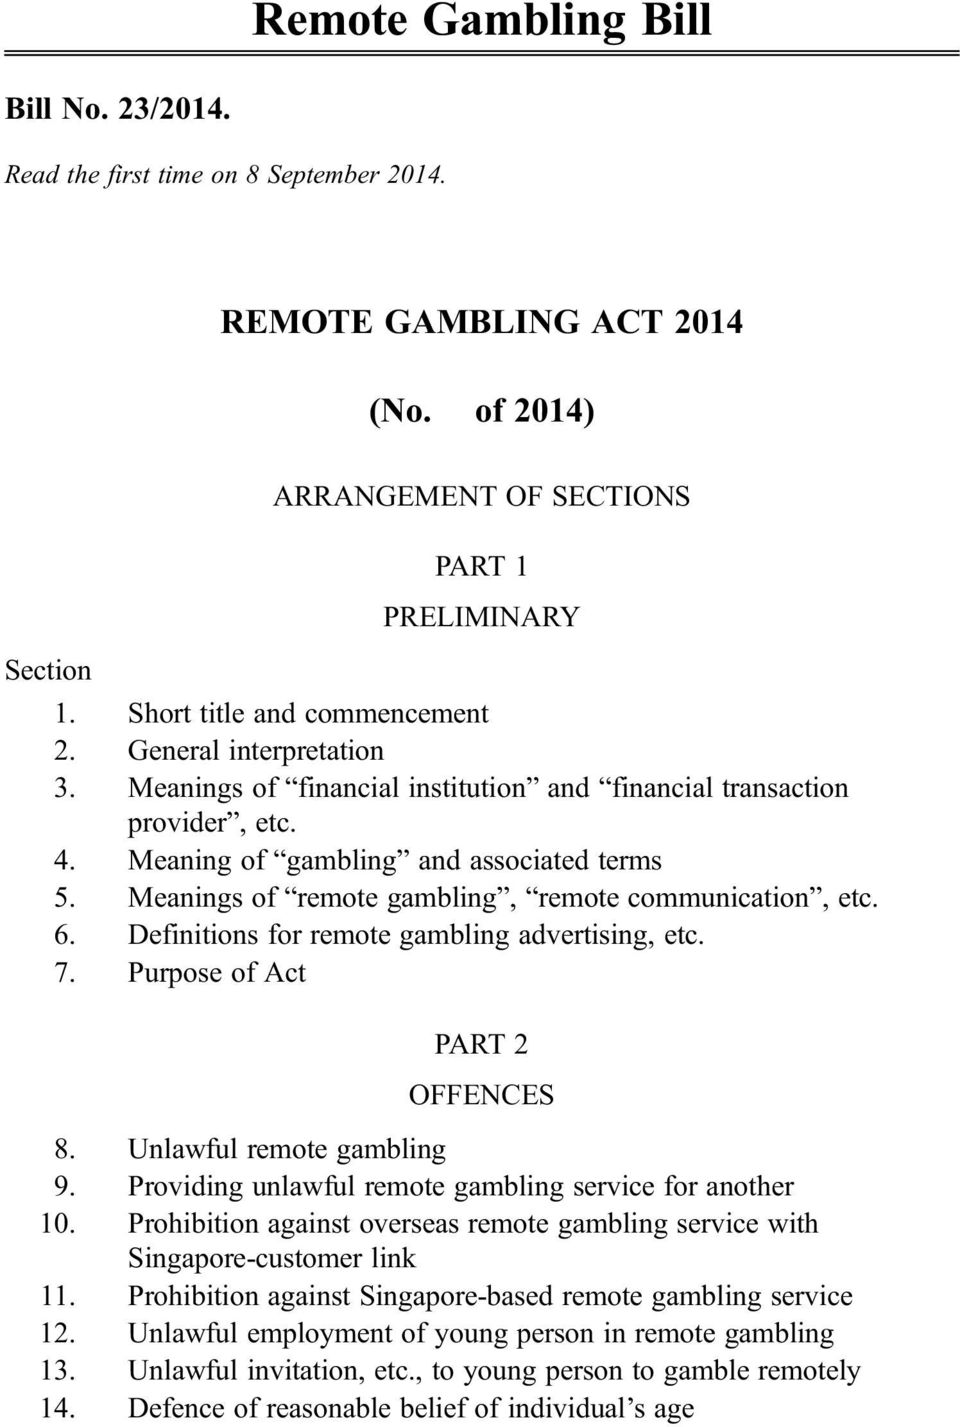 Meanings of remote gambling, remote communication, etc. 6. Definitions for remote gambling advertising, etc. 7. Purpose of Act PART 2 OFFENCES 8. Unlawful remote gambling 9.